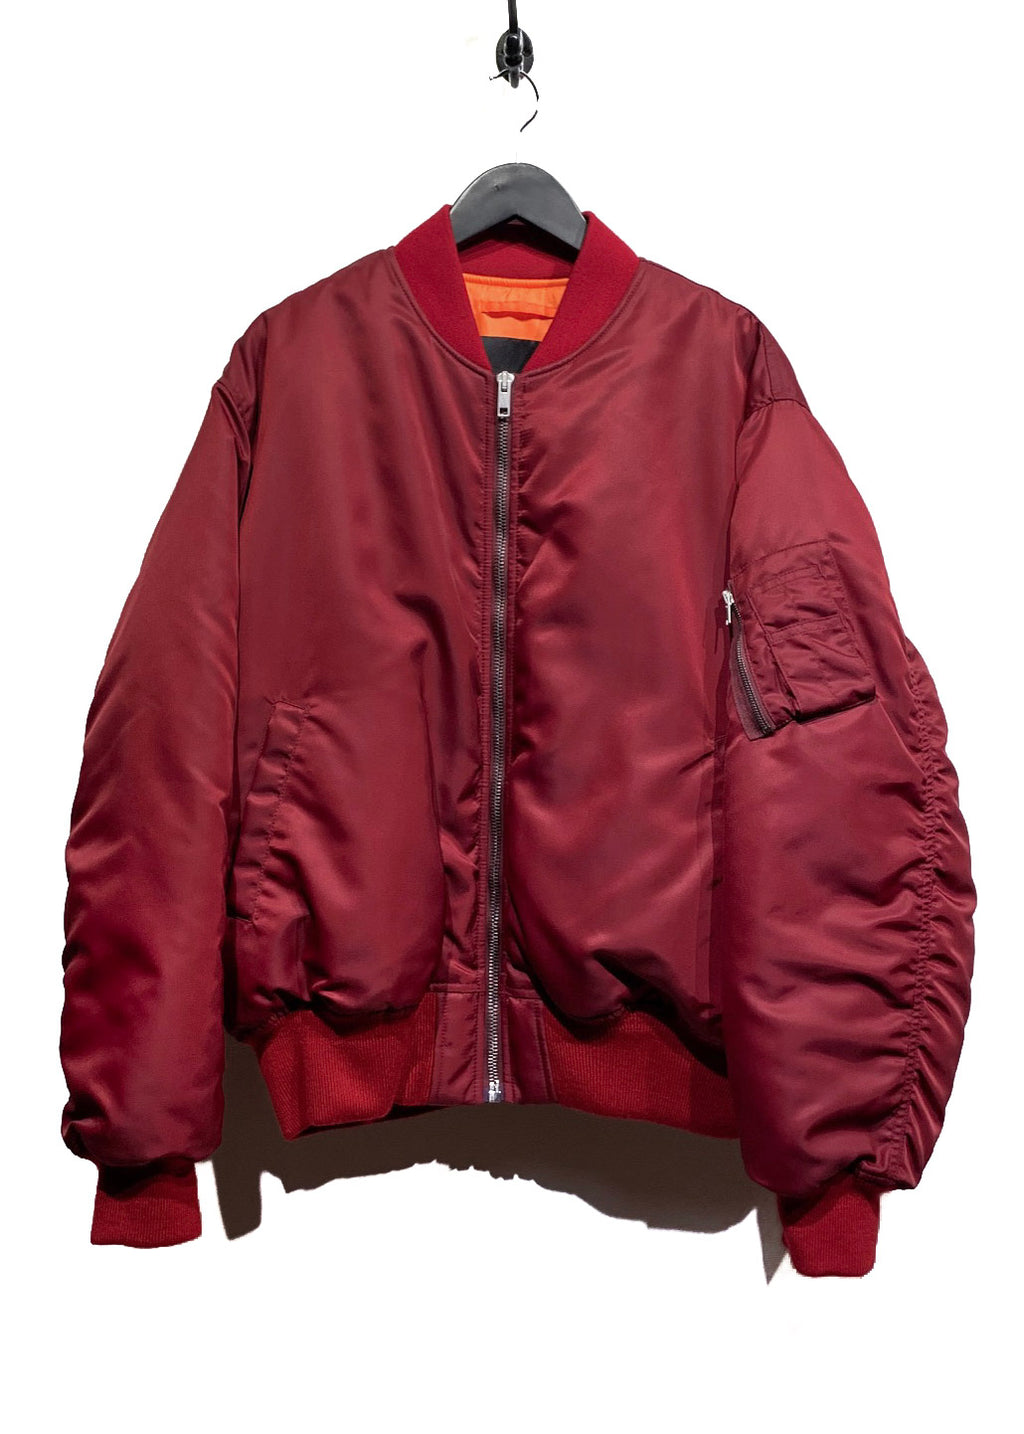 Calvin Klein 205W39NYC Red Embroidered Oversized Bomber